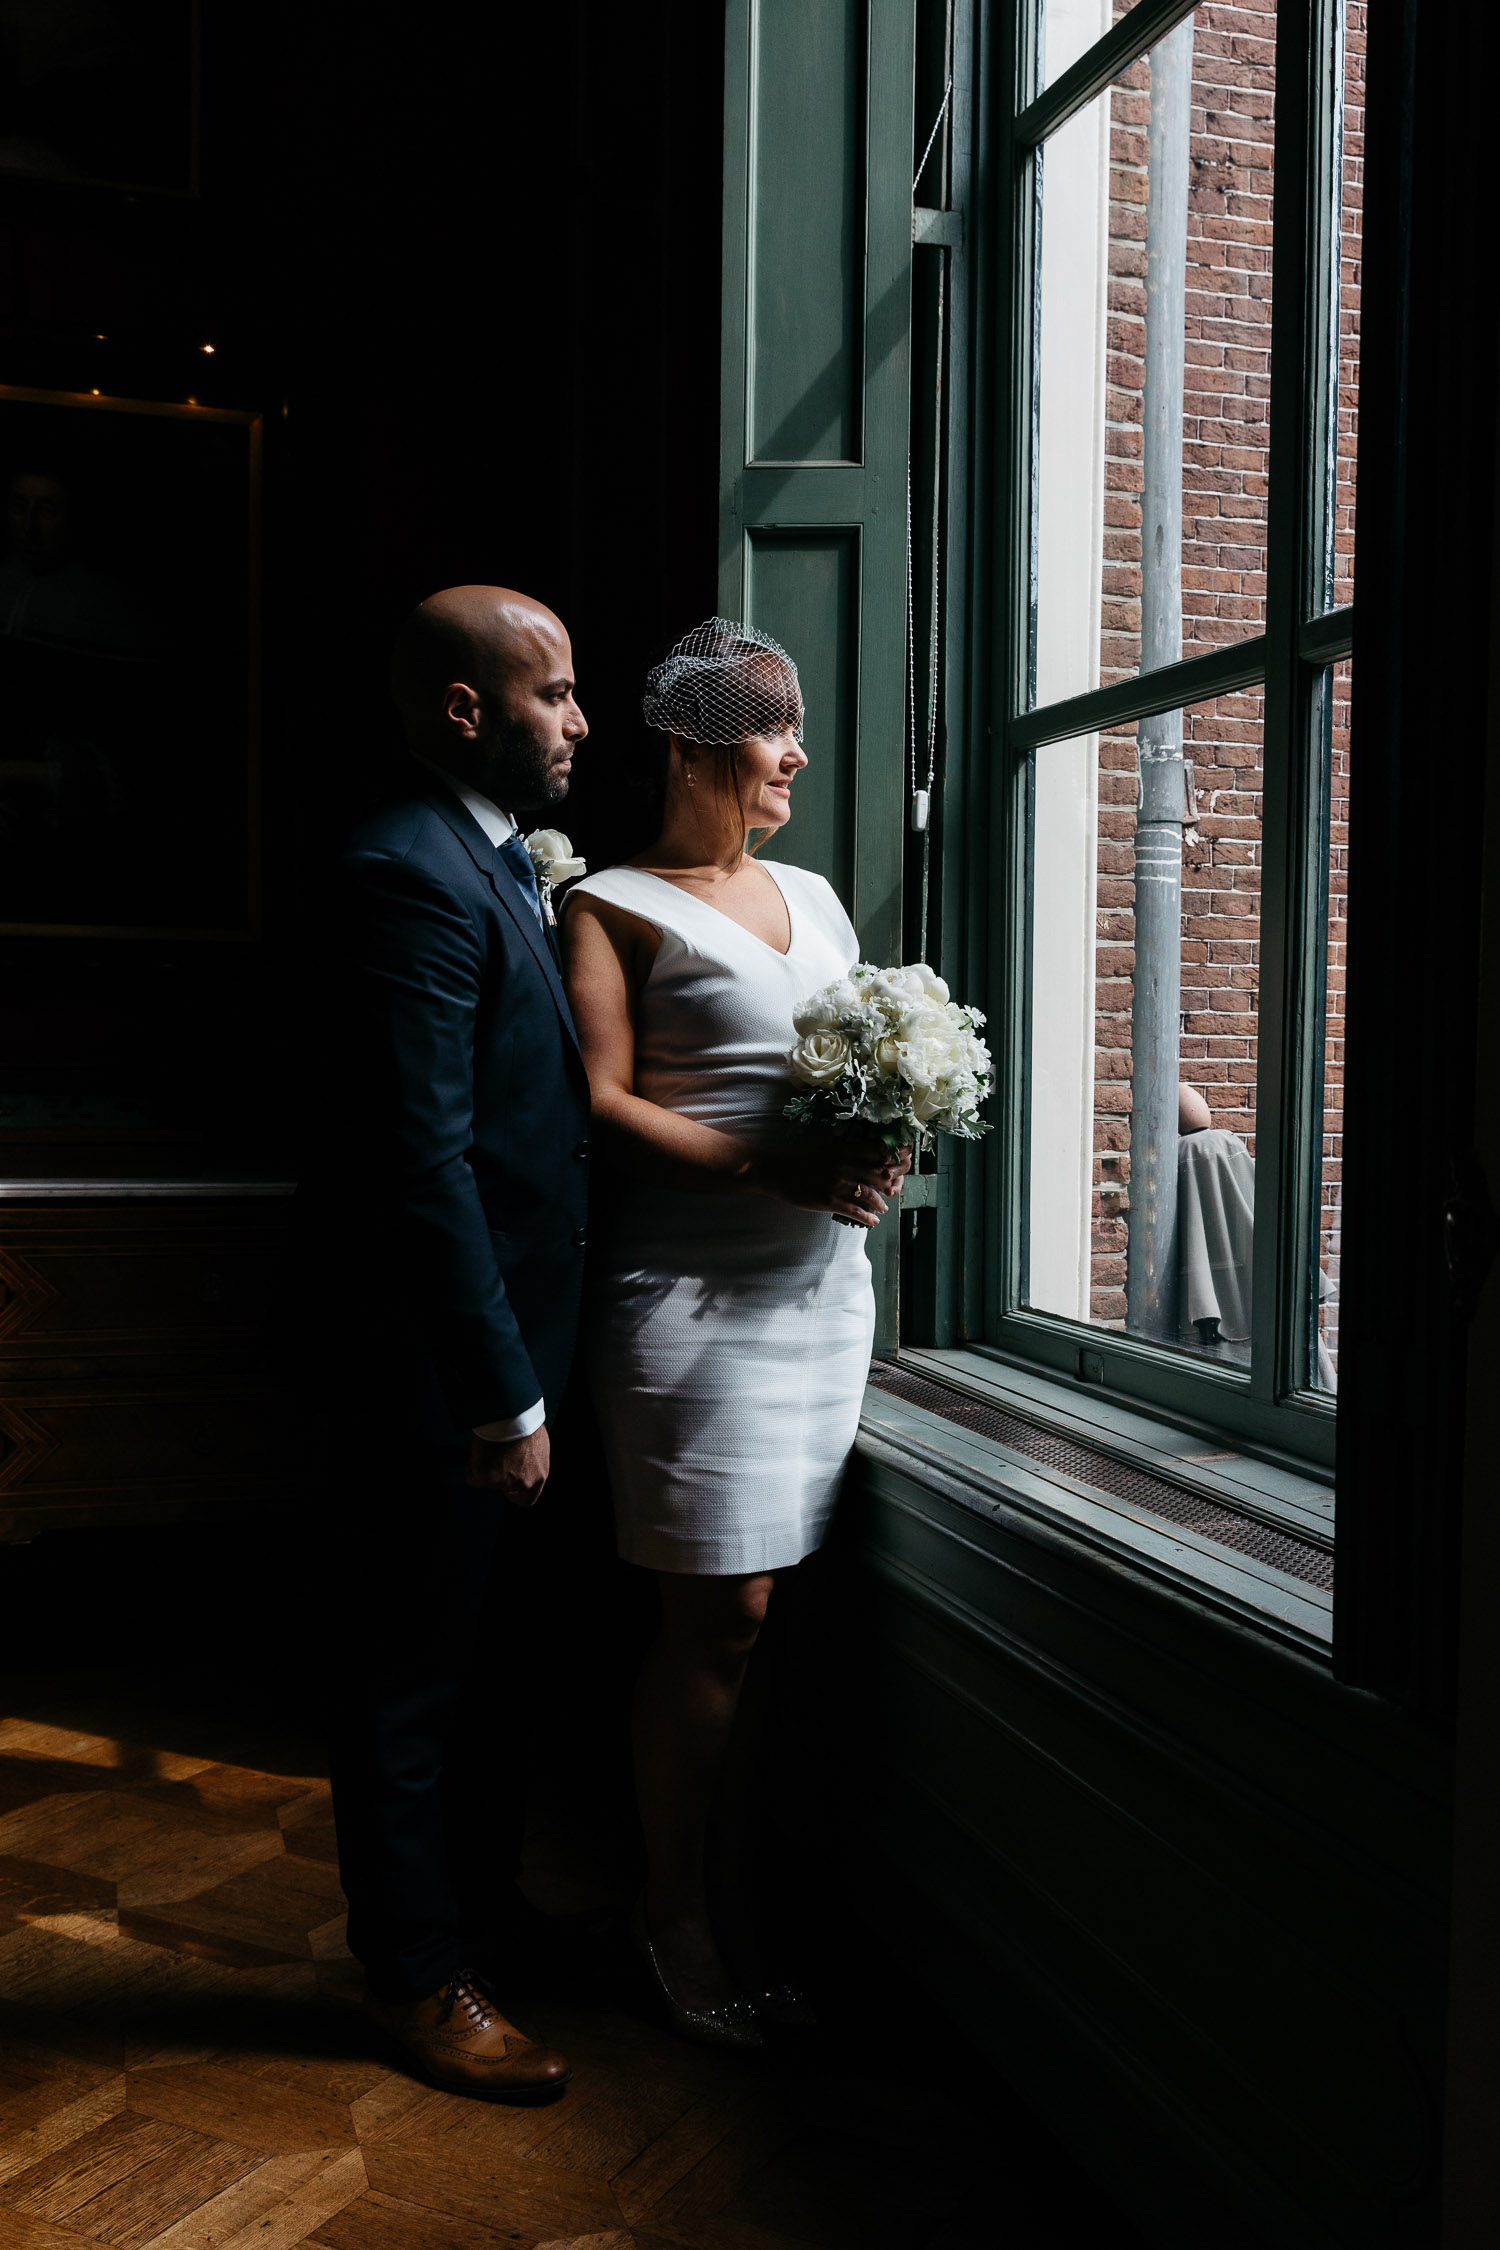 Wedding-Esther-and-Simon-by-On-a-hazy-morning-Amsterdam-78.jpg